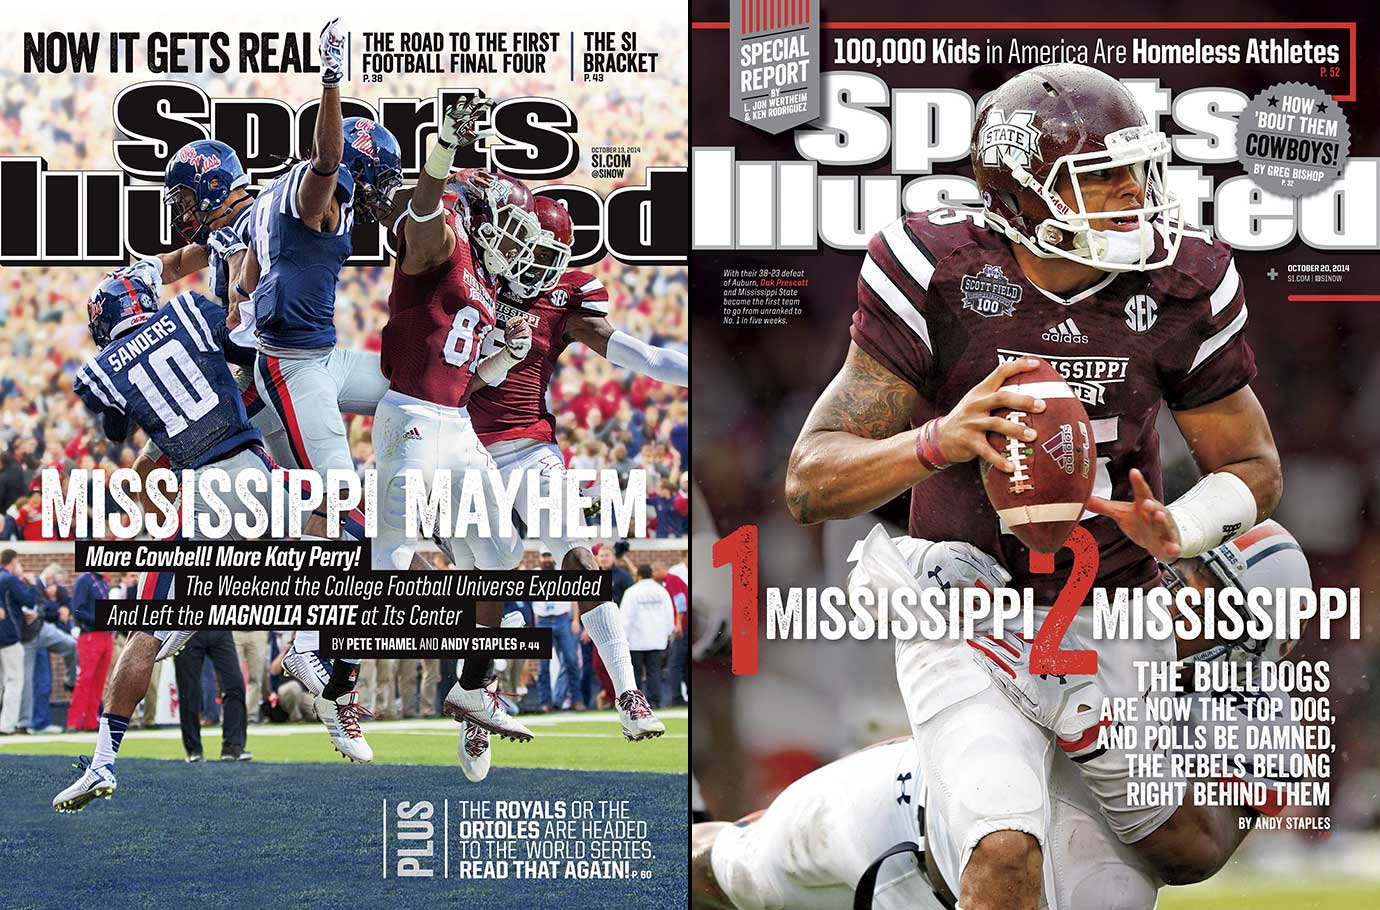 Ole Miss started 7-0, but fell to 9-4, capped off by a 42-3 defeat to TCU in the Peach Bowl. Meanwhile, after starting off 9-0 and being the No. 1 team for five weeks, Mississippi State dropped to 10-3 losing three of their last four, including two straight losses to arch-rival Ole Miss, 31-17, and Georgia Tech in the Orange Bowl, 49-34.